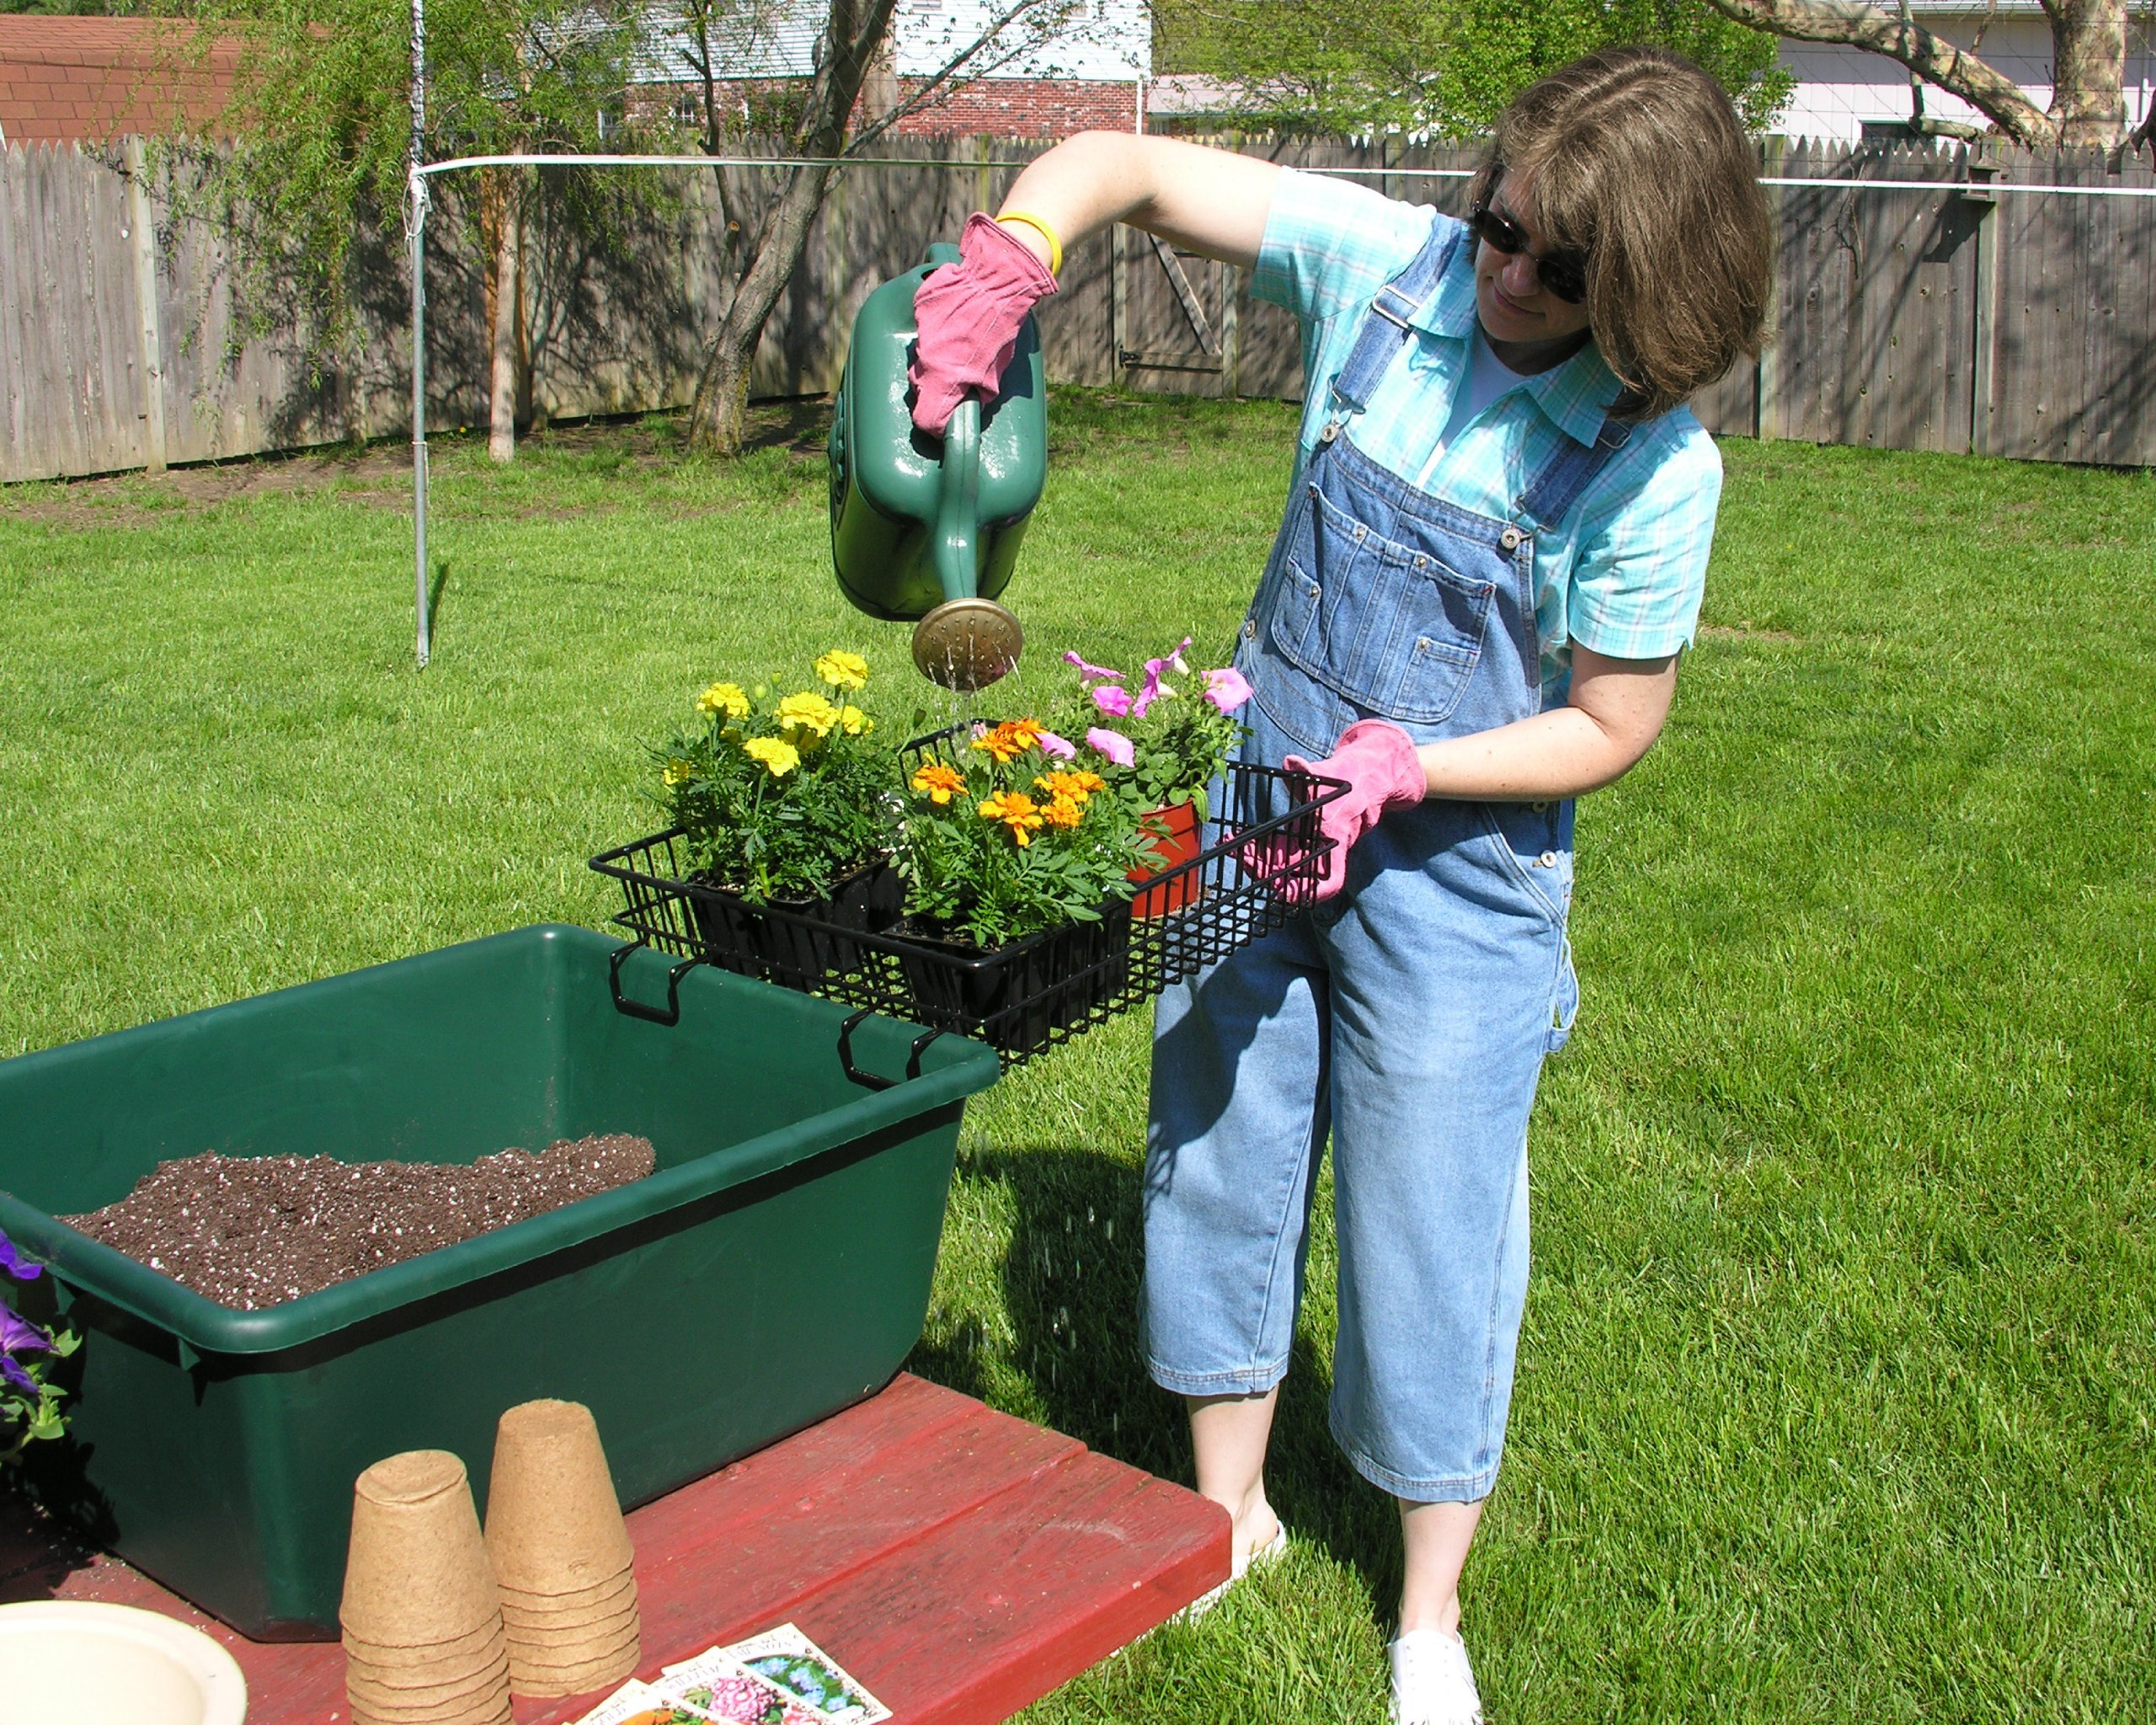 The Potting Caddy-flower, seed and planting soil portable tabletop potting gardening bench by The Potting Caddy